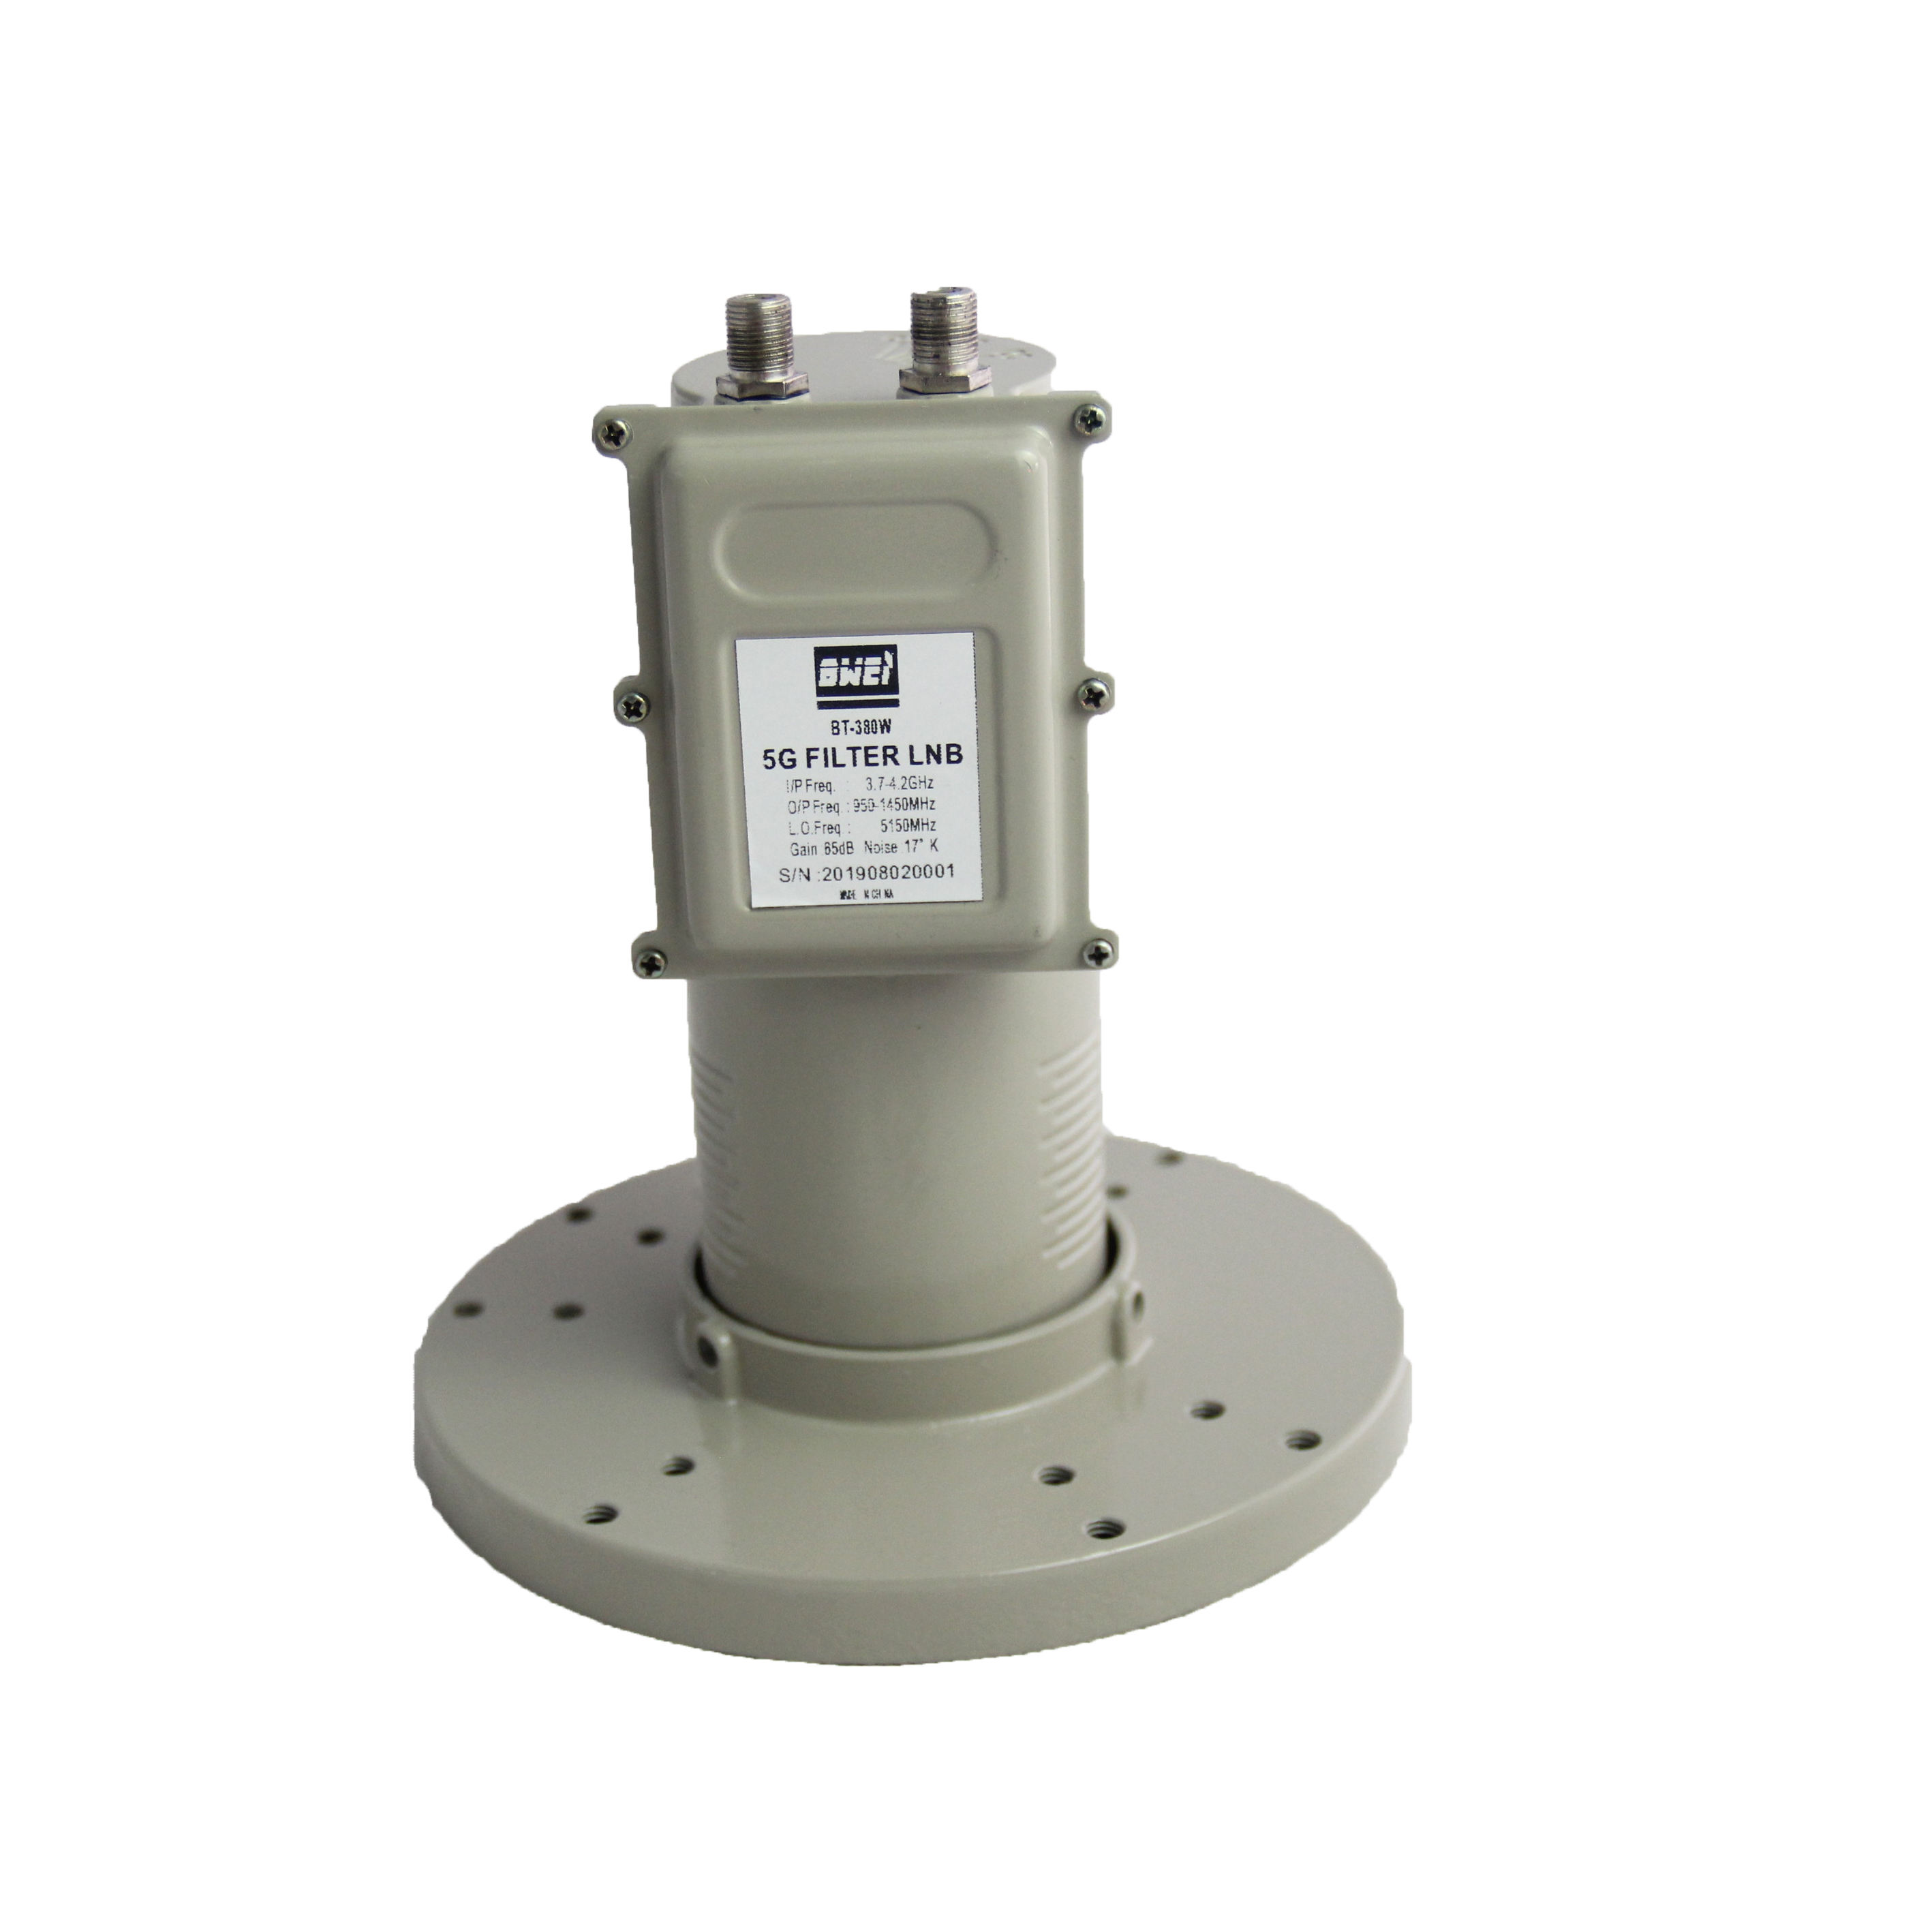 Anti-Interference High Gain Ganda Output C Band LNB 5G Penerima Satelit Filter